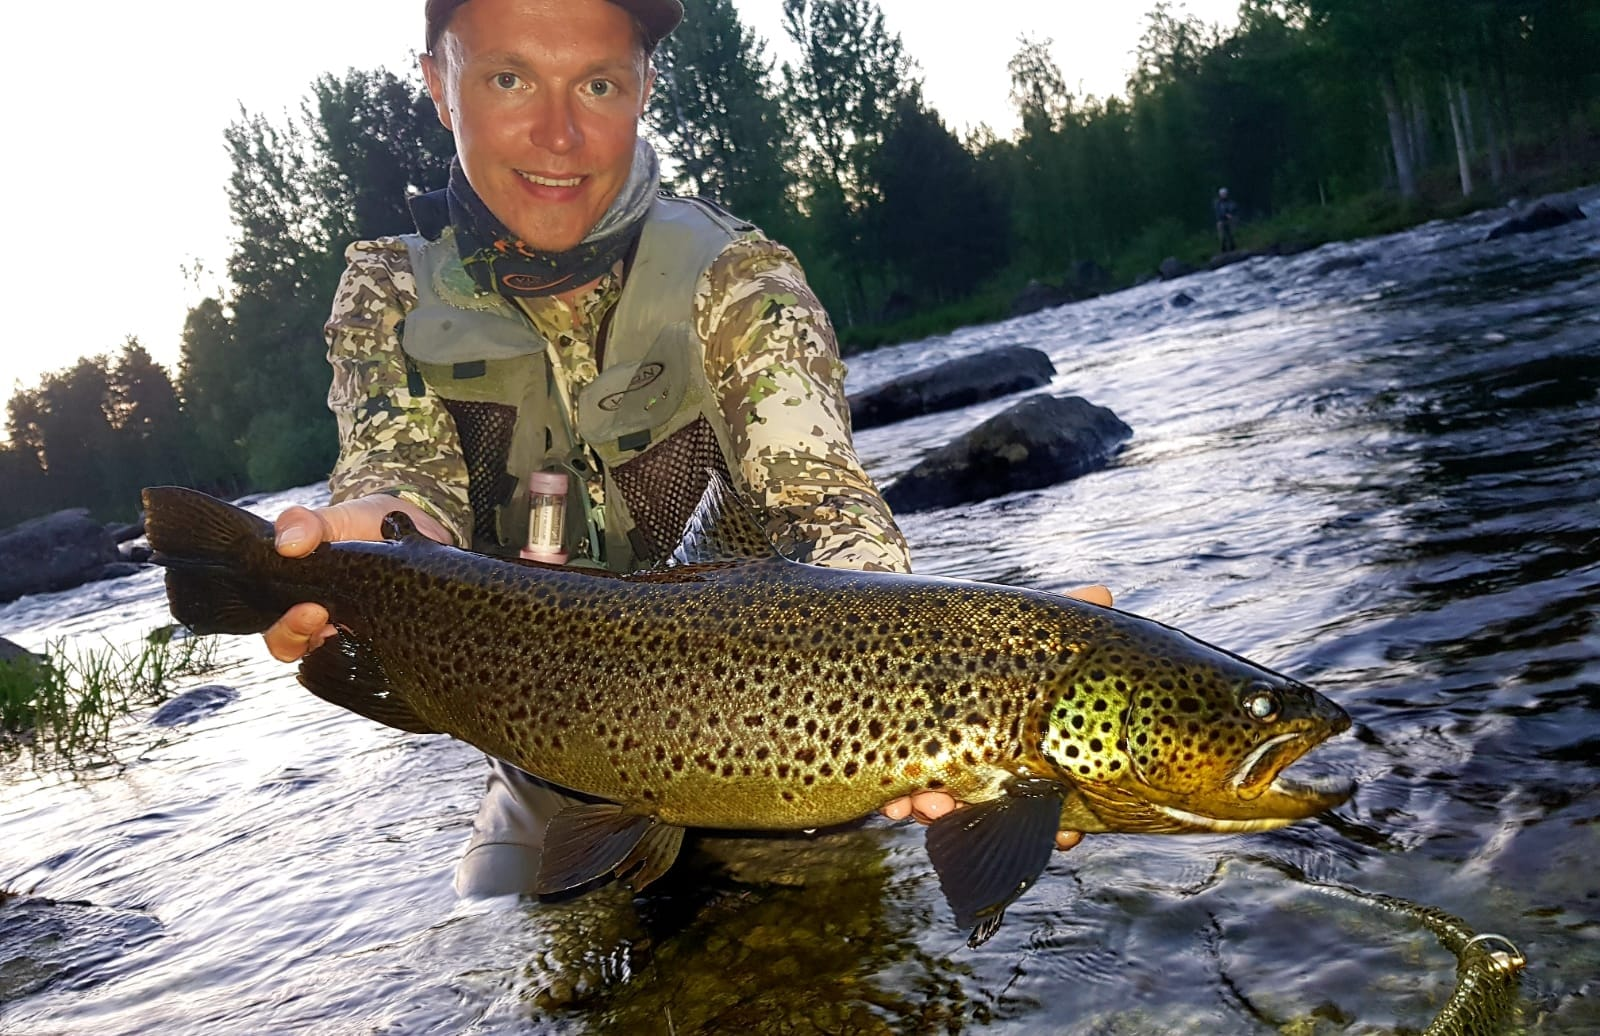 Low-light conditions mean great fishing, but challenges for the camera man